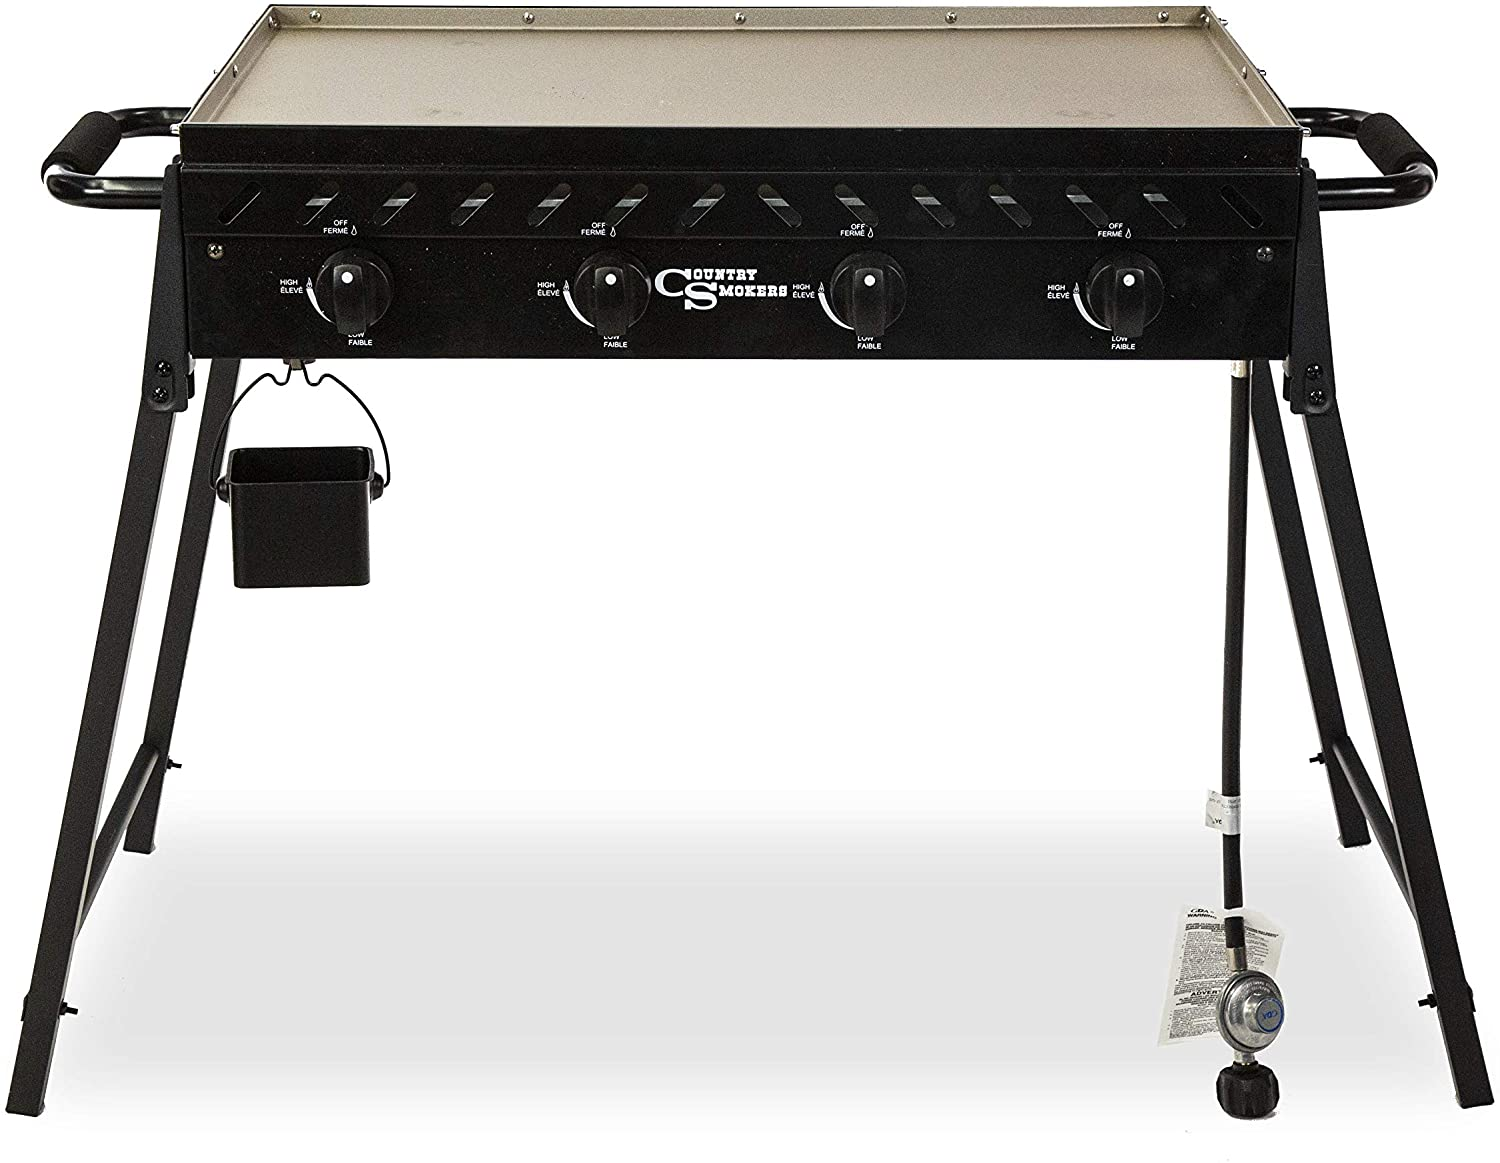 Country Smokers The Highland 4-Burner Portable Griddle